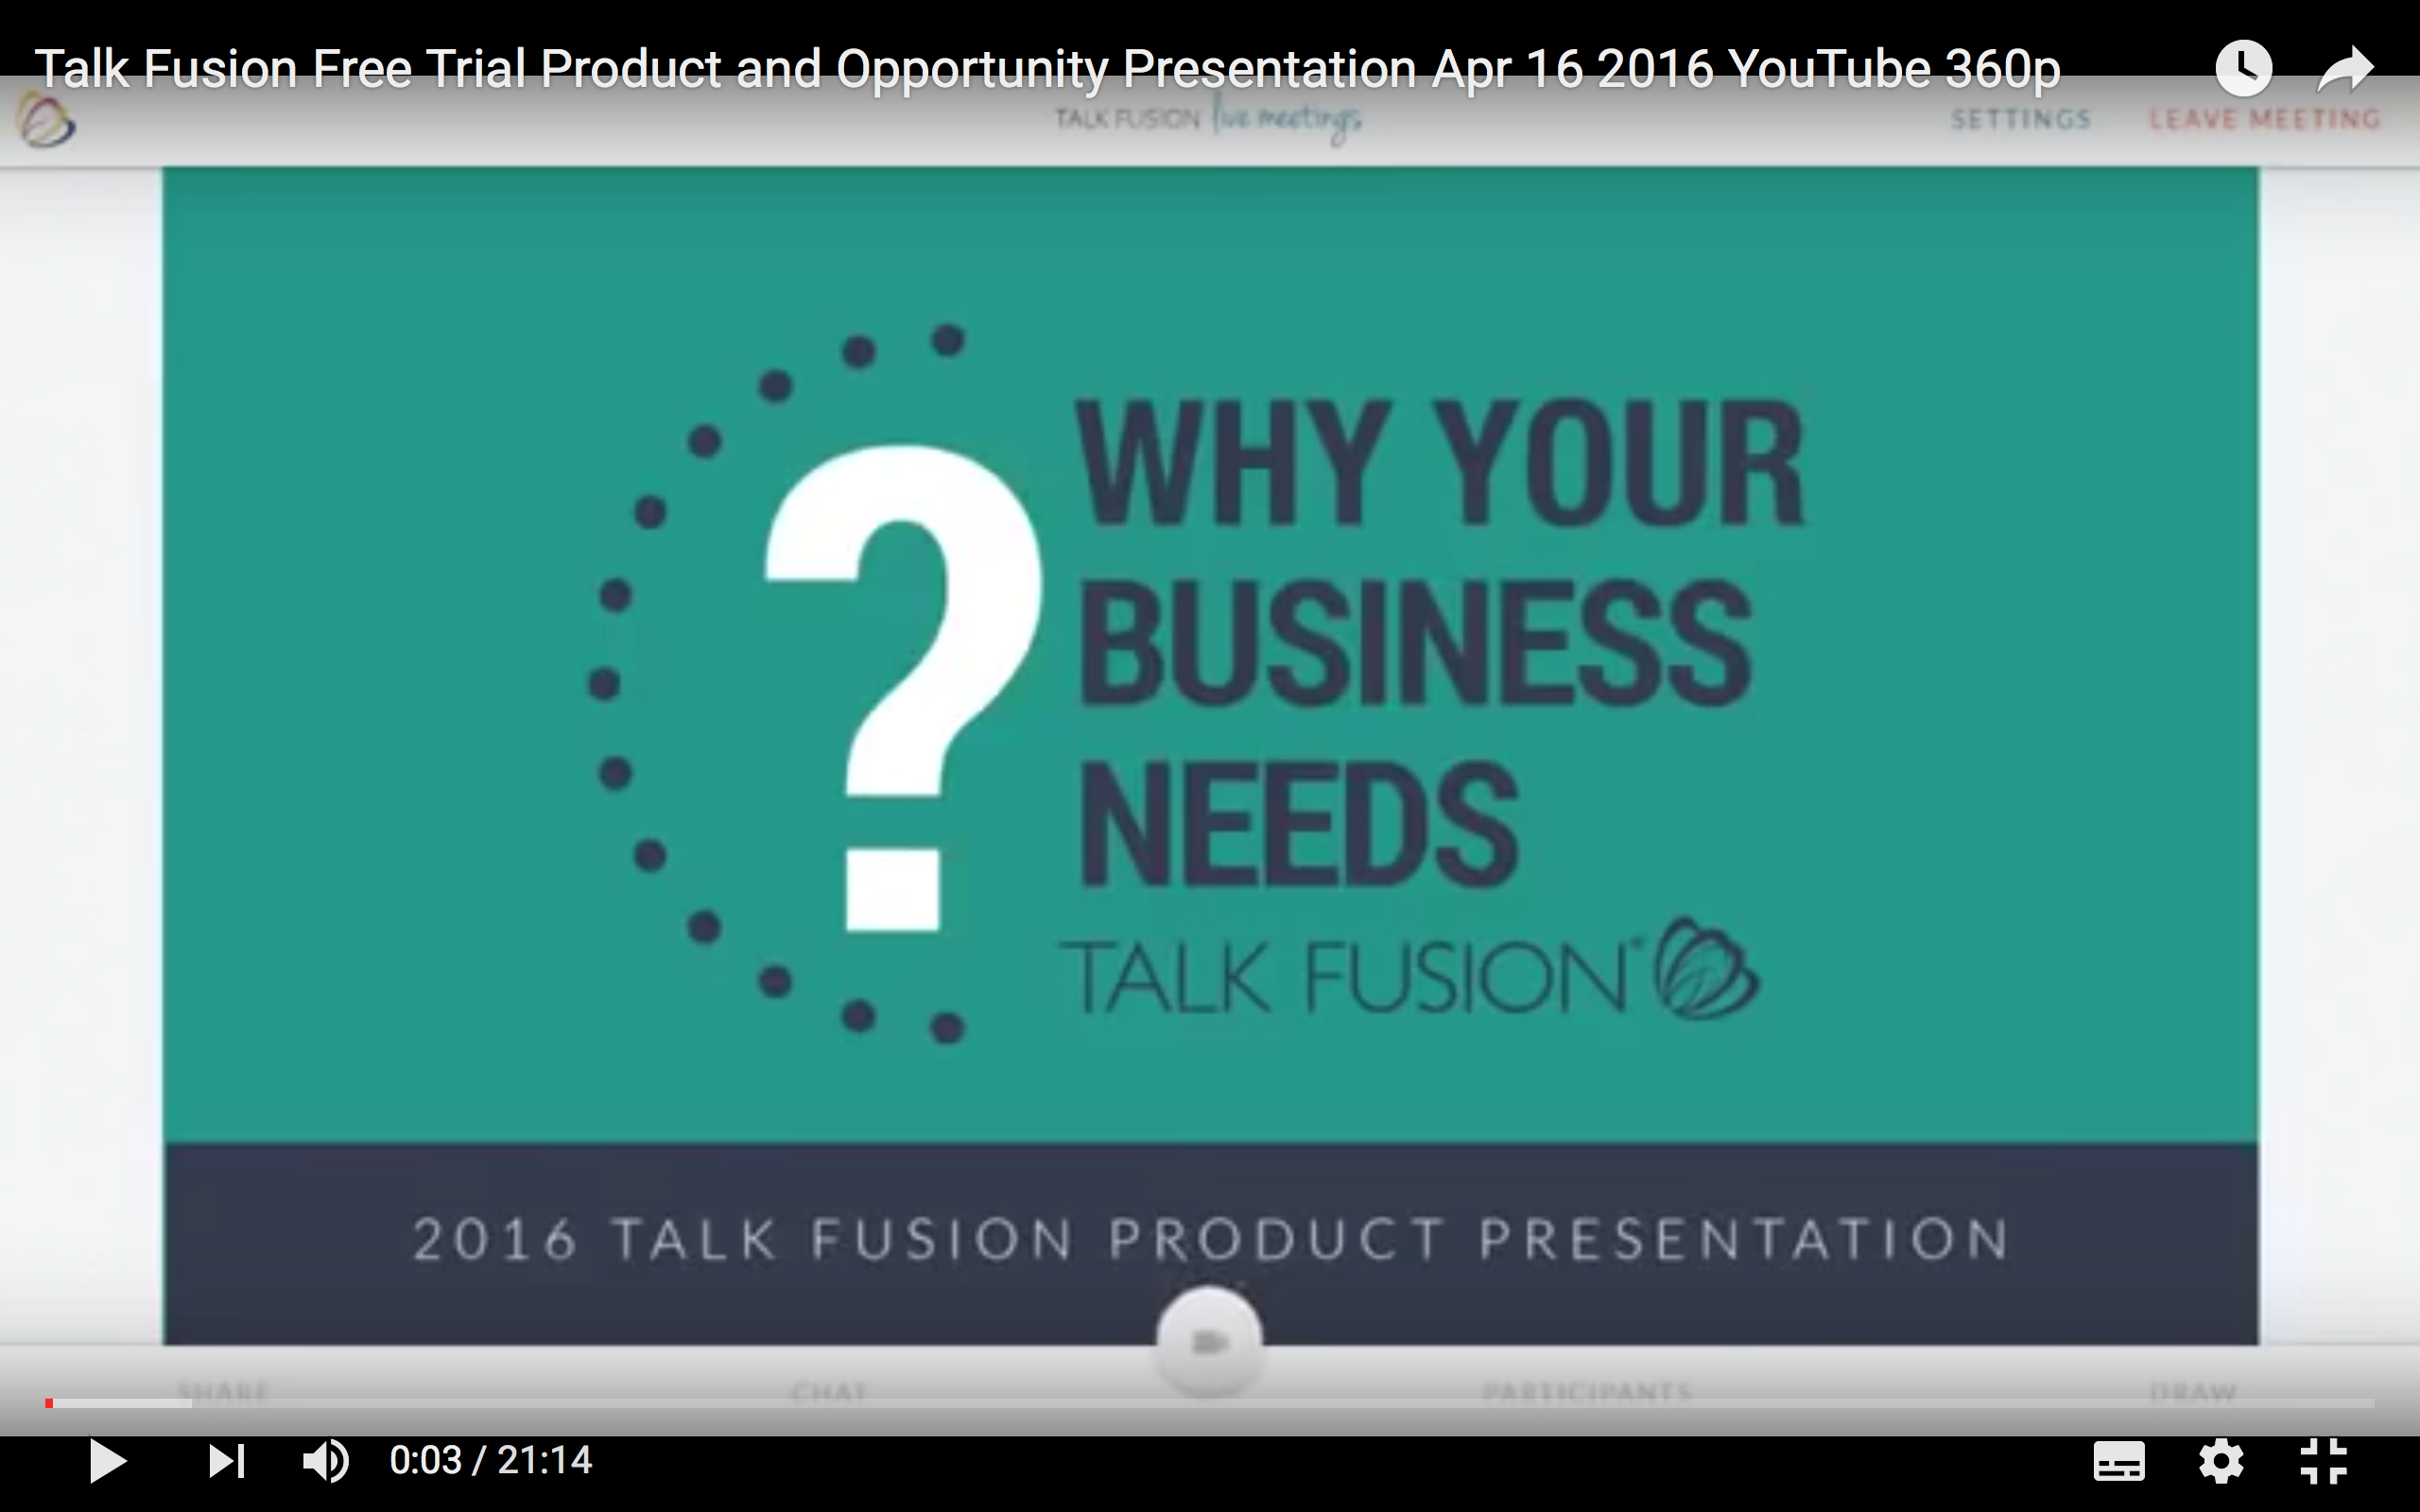 TalkFusion Opportunity Presentation